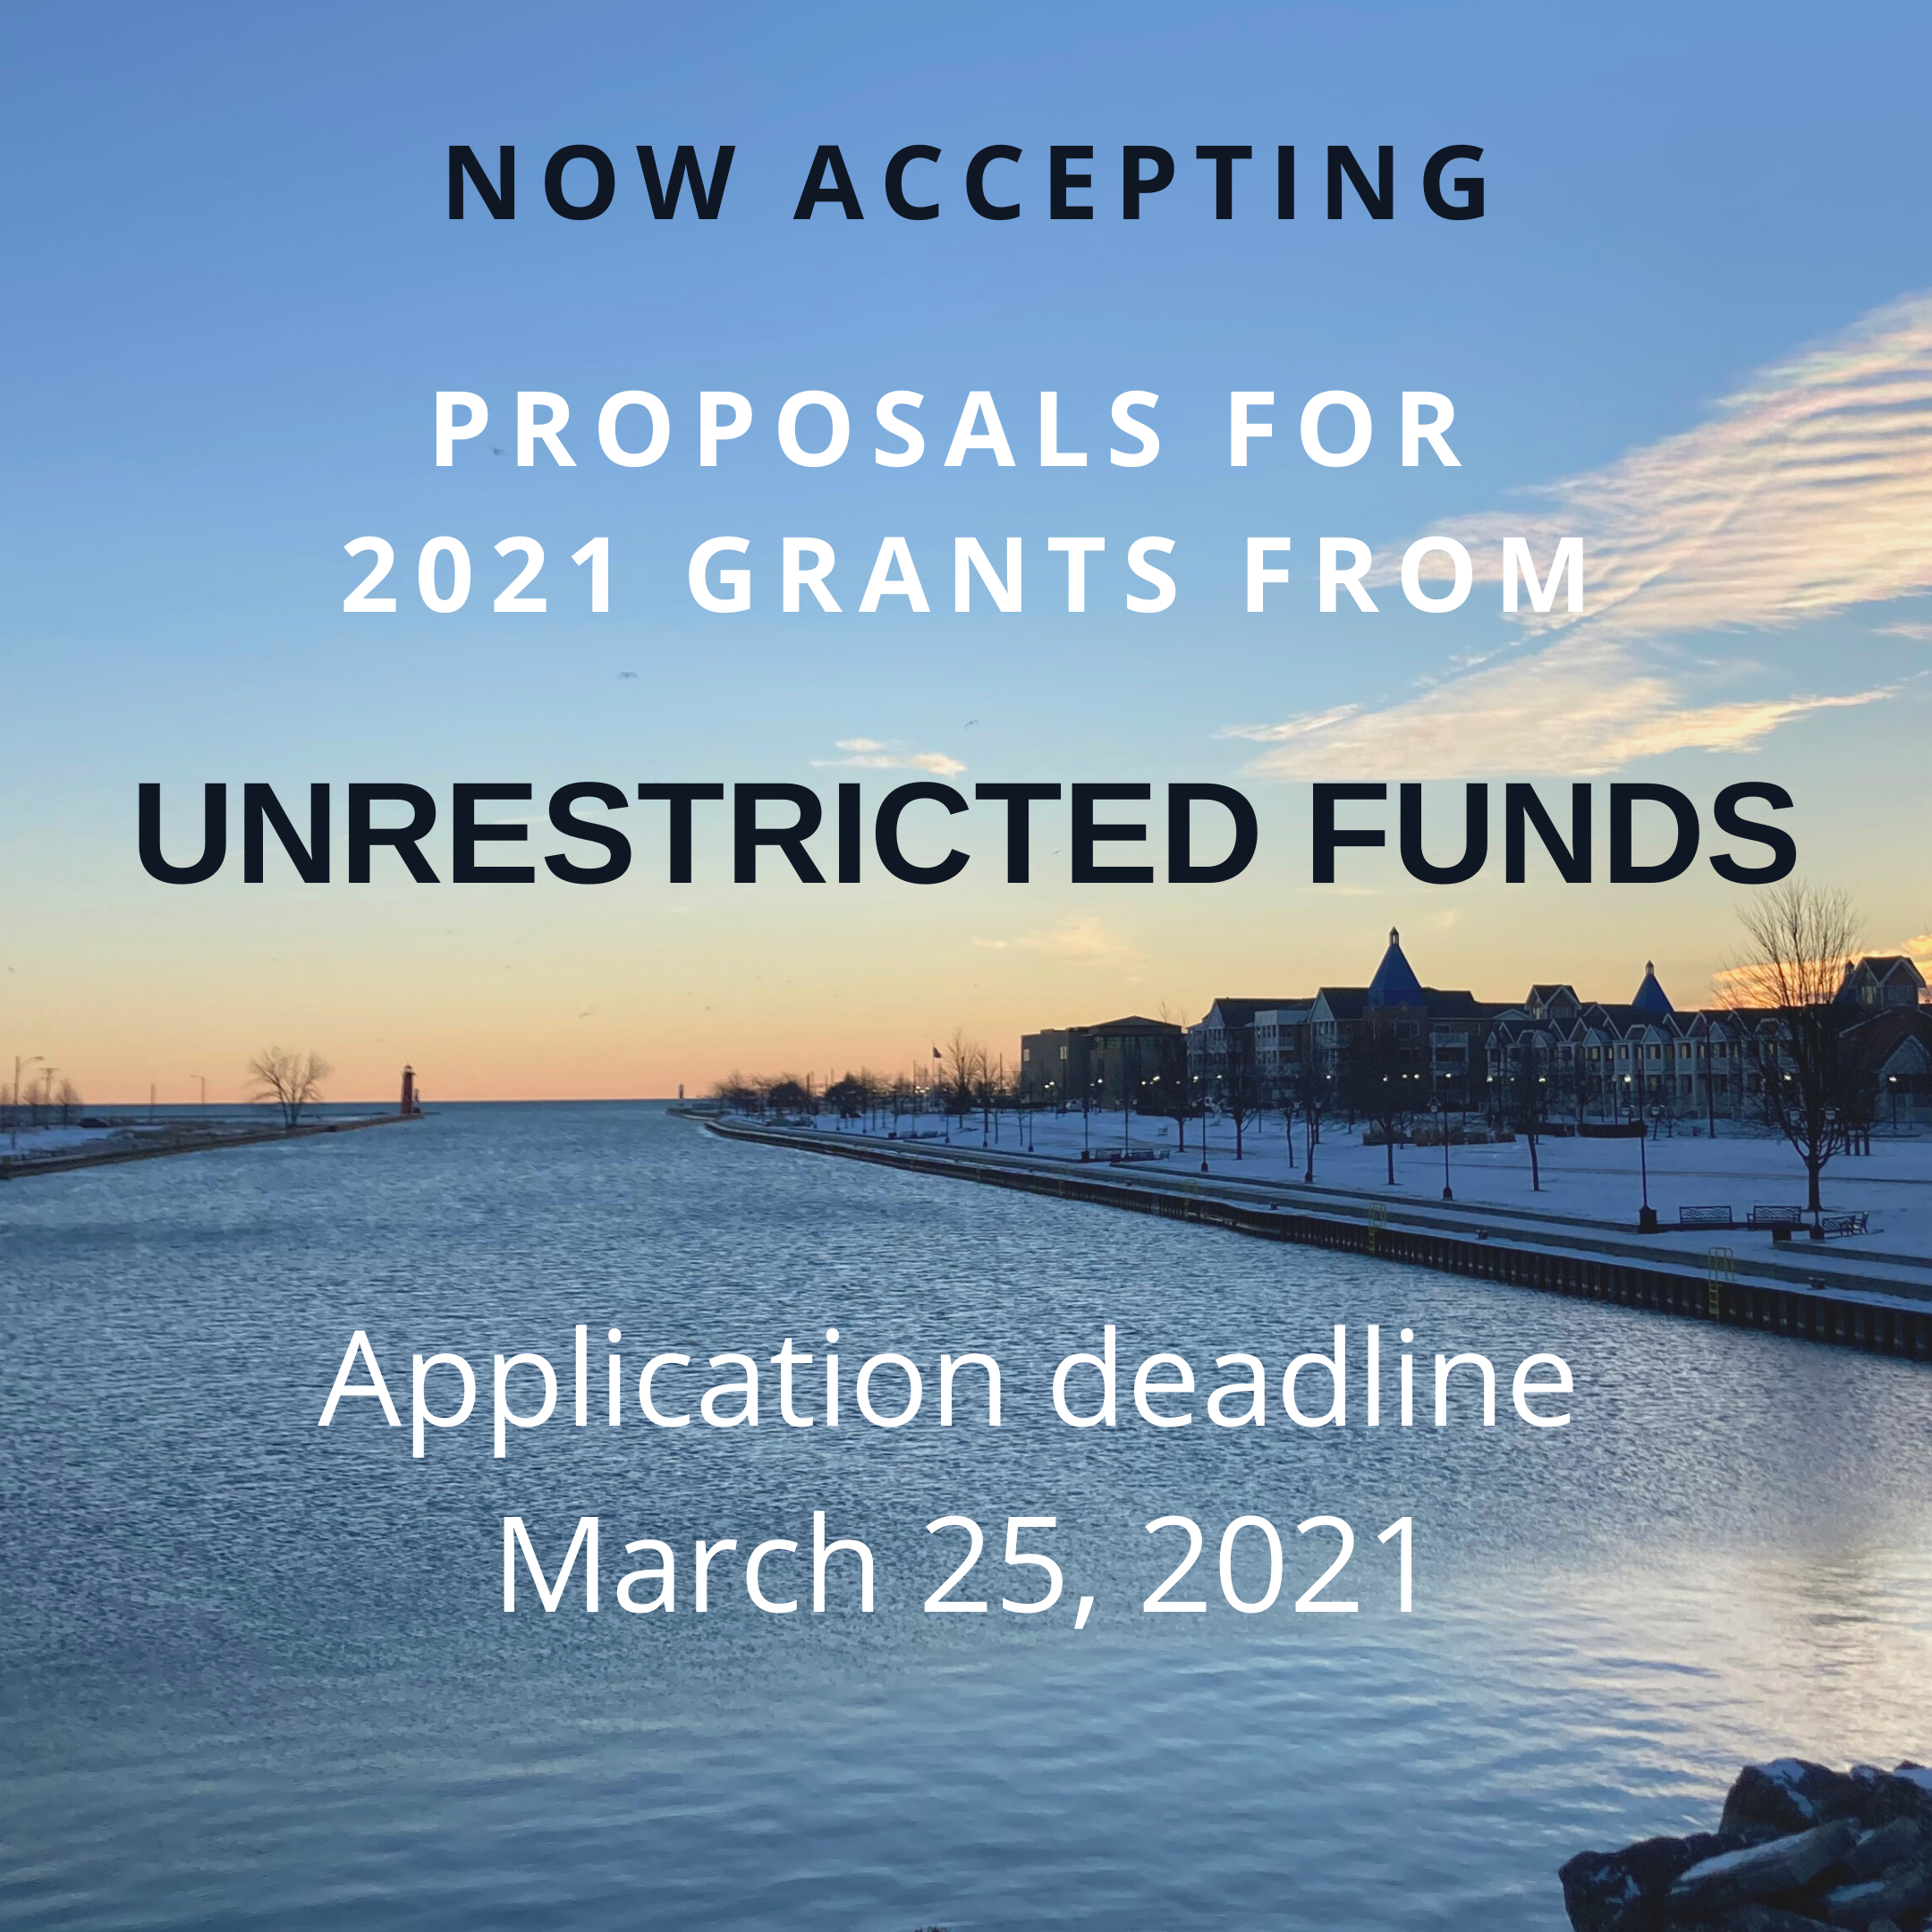 Now Accepting proposals for grants from Unrestricted Funds